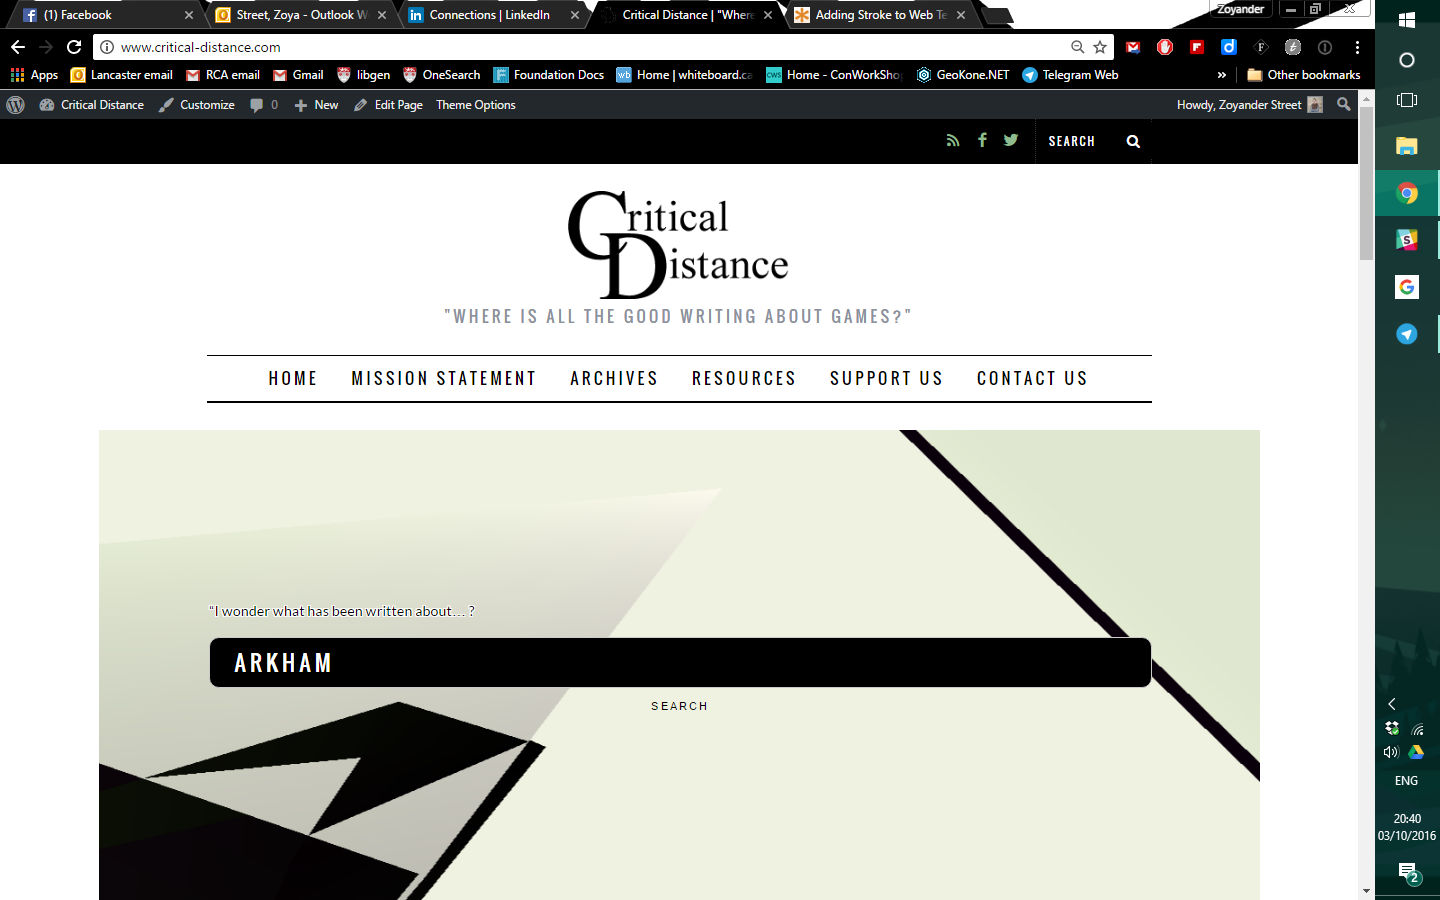 New design of Critical Distance home page